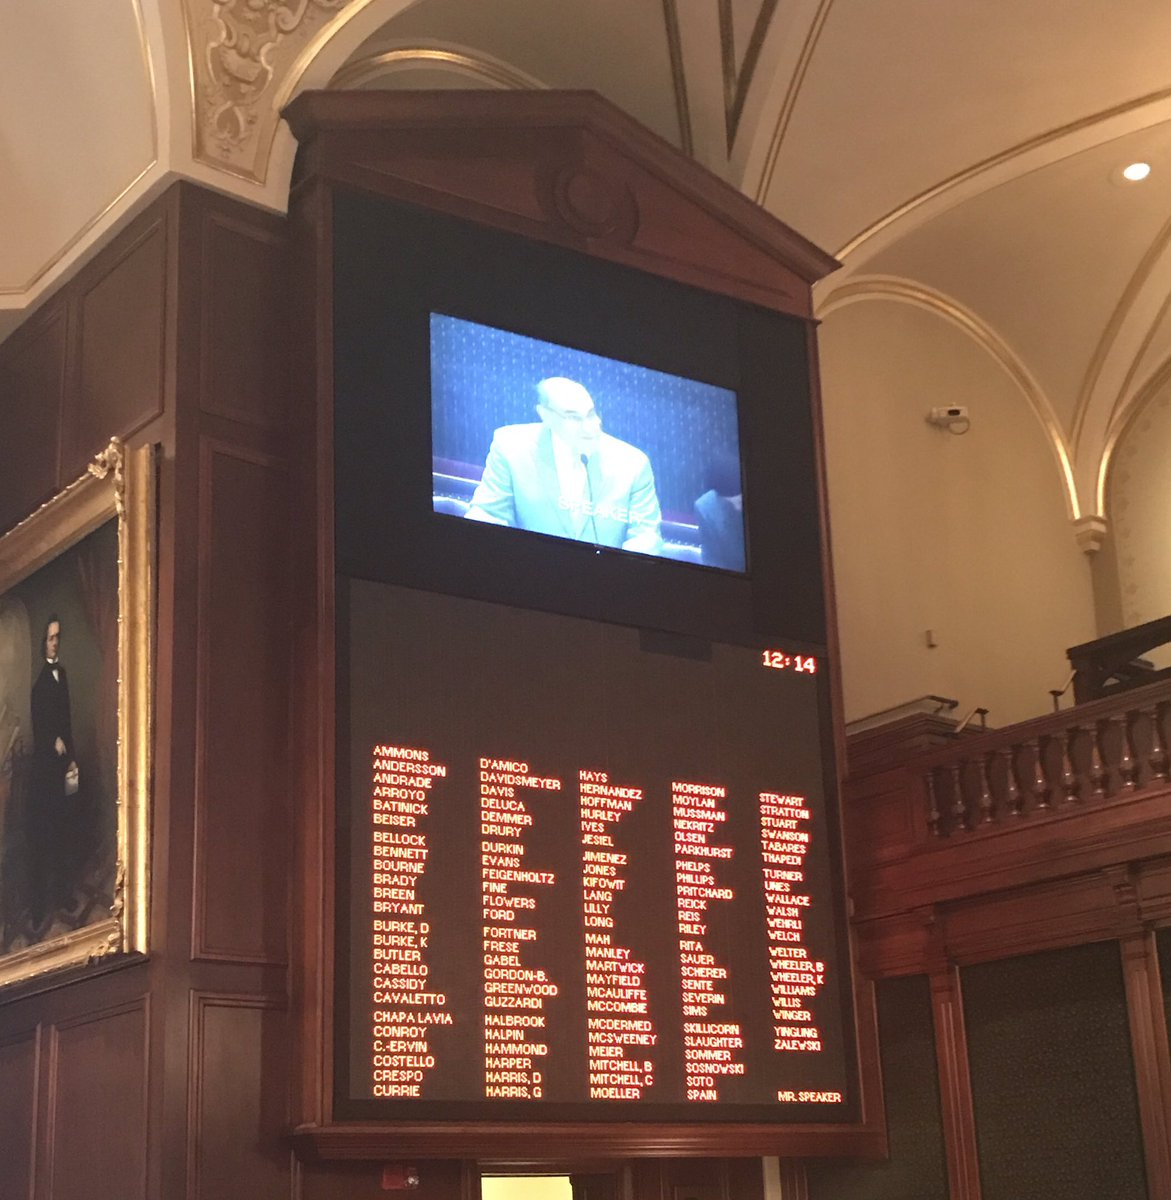 test Twitter Media - 2nd day of Governor Rauner's Special Session lasted 14 minutes. Another wasted $40,000 of taxpayer money.  #RaunerDoYourJob #BudgetNow https://t.co/LSQJlNEoa1